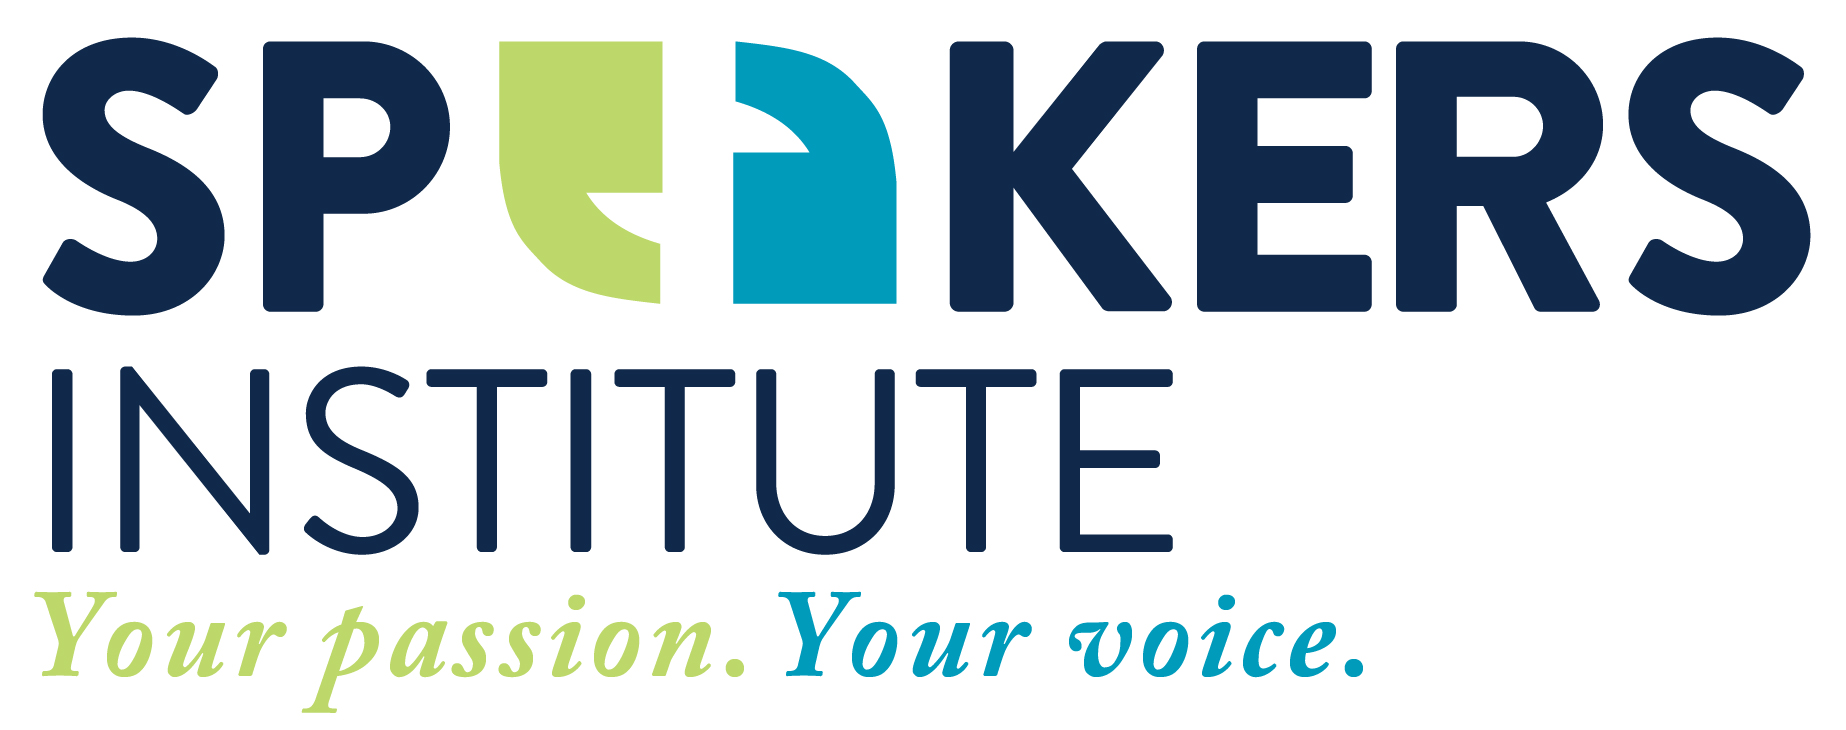 SPEAKERS_INSTITUTE LOGO COLOURED.jpg